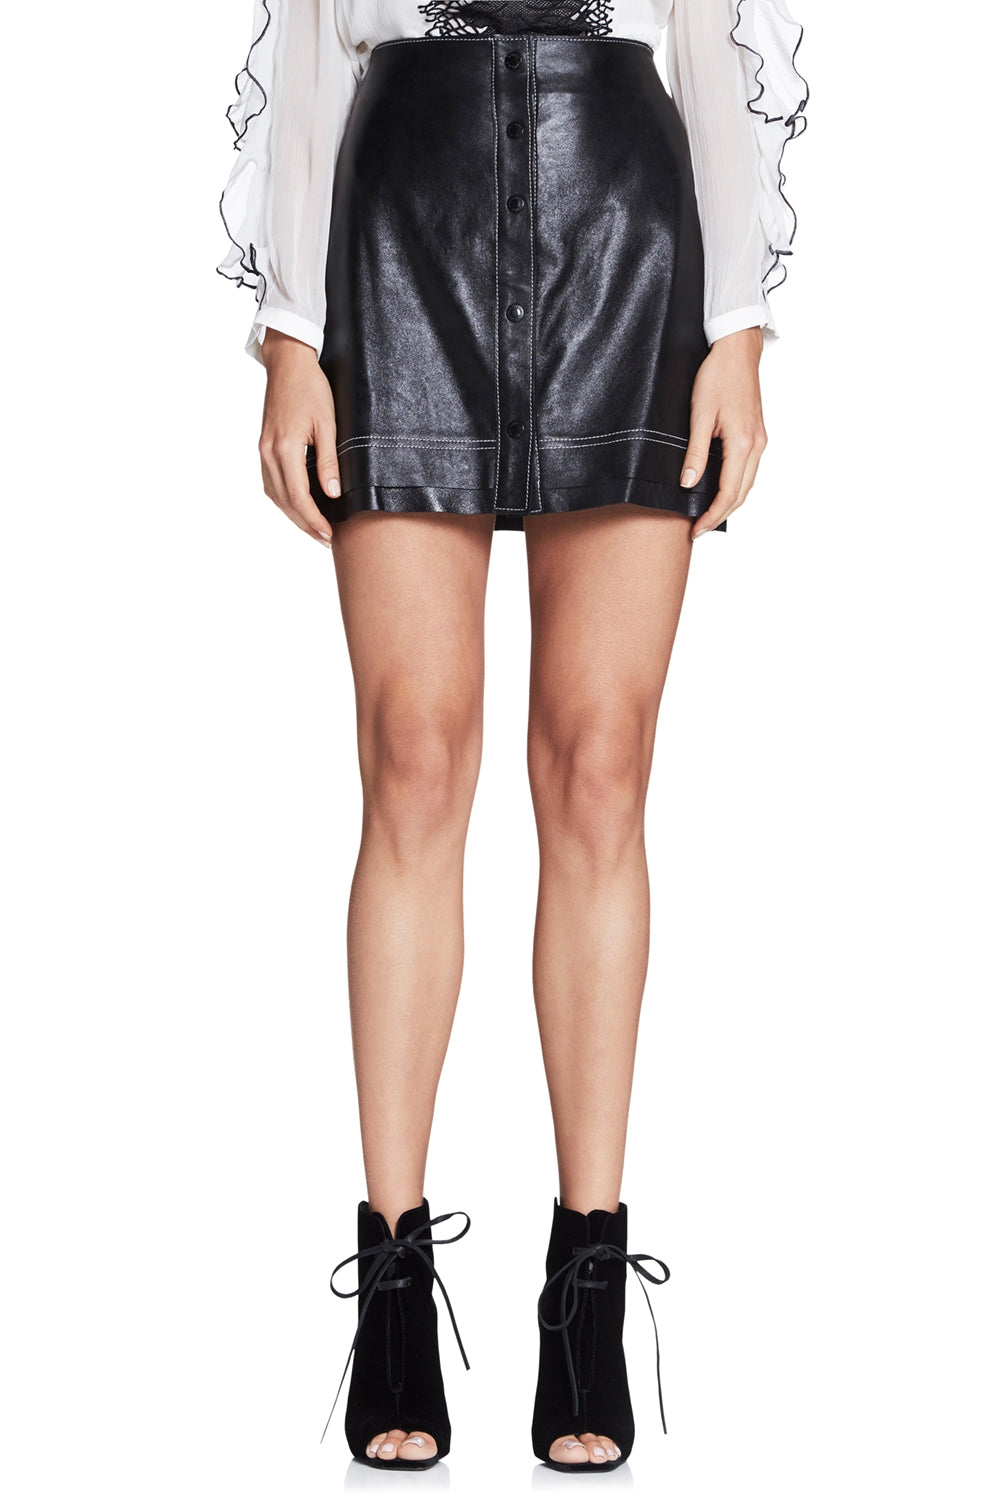 MOD SQUAD LEATHER MINI SKIRT